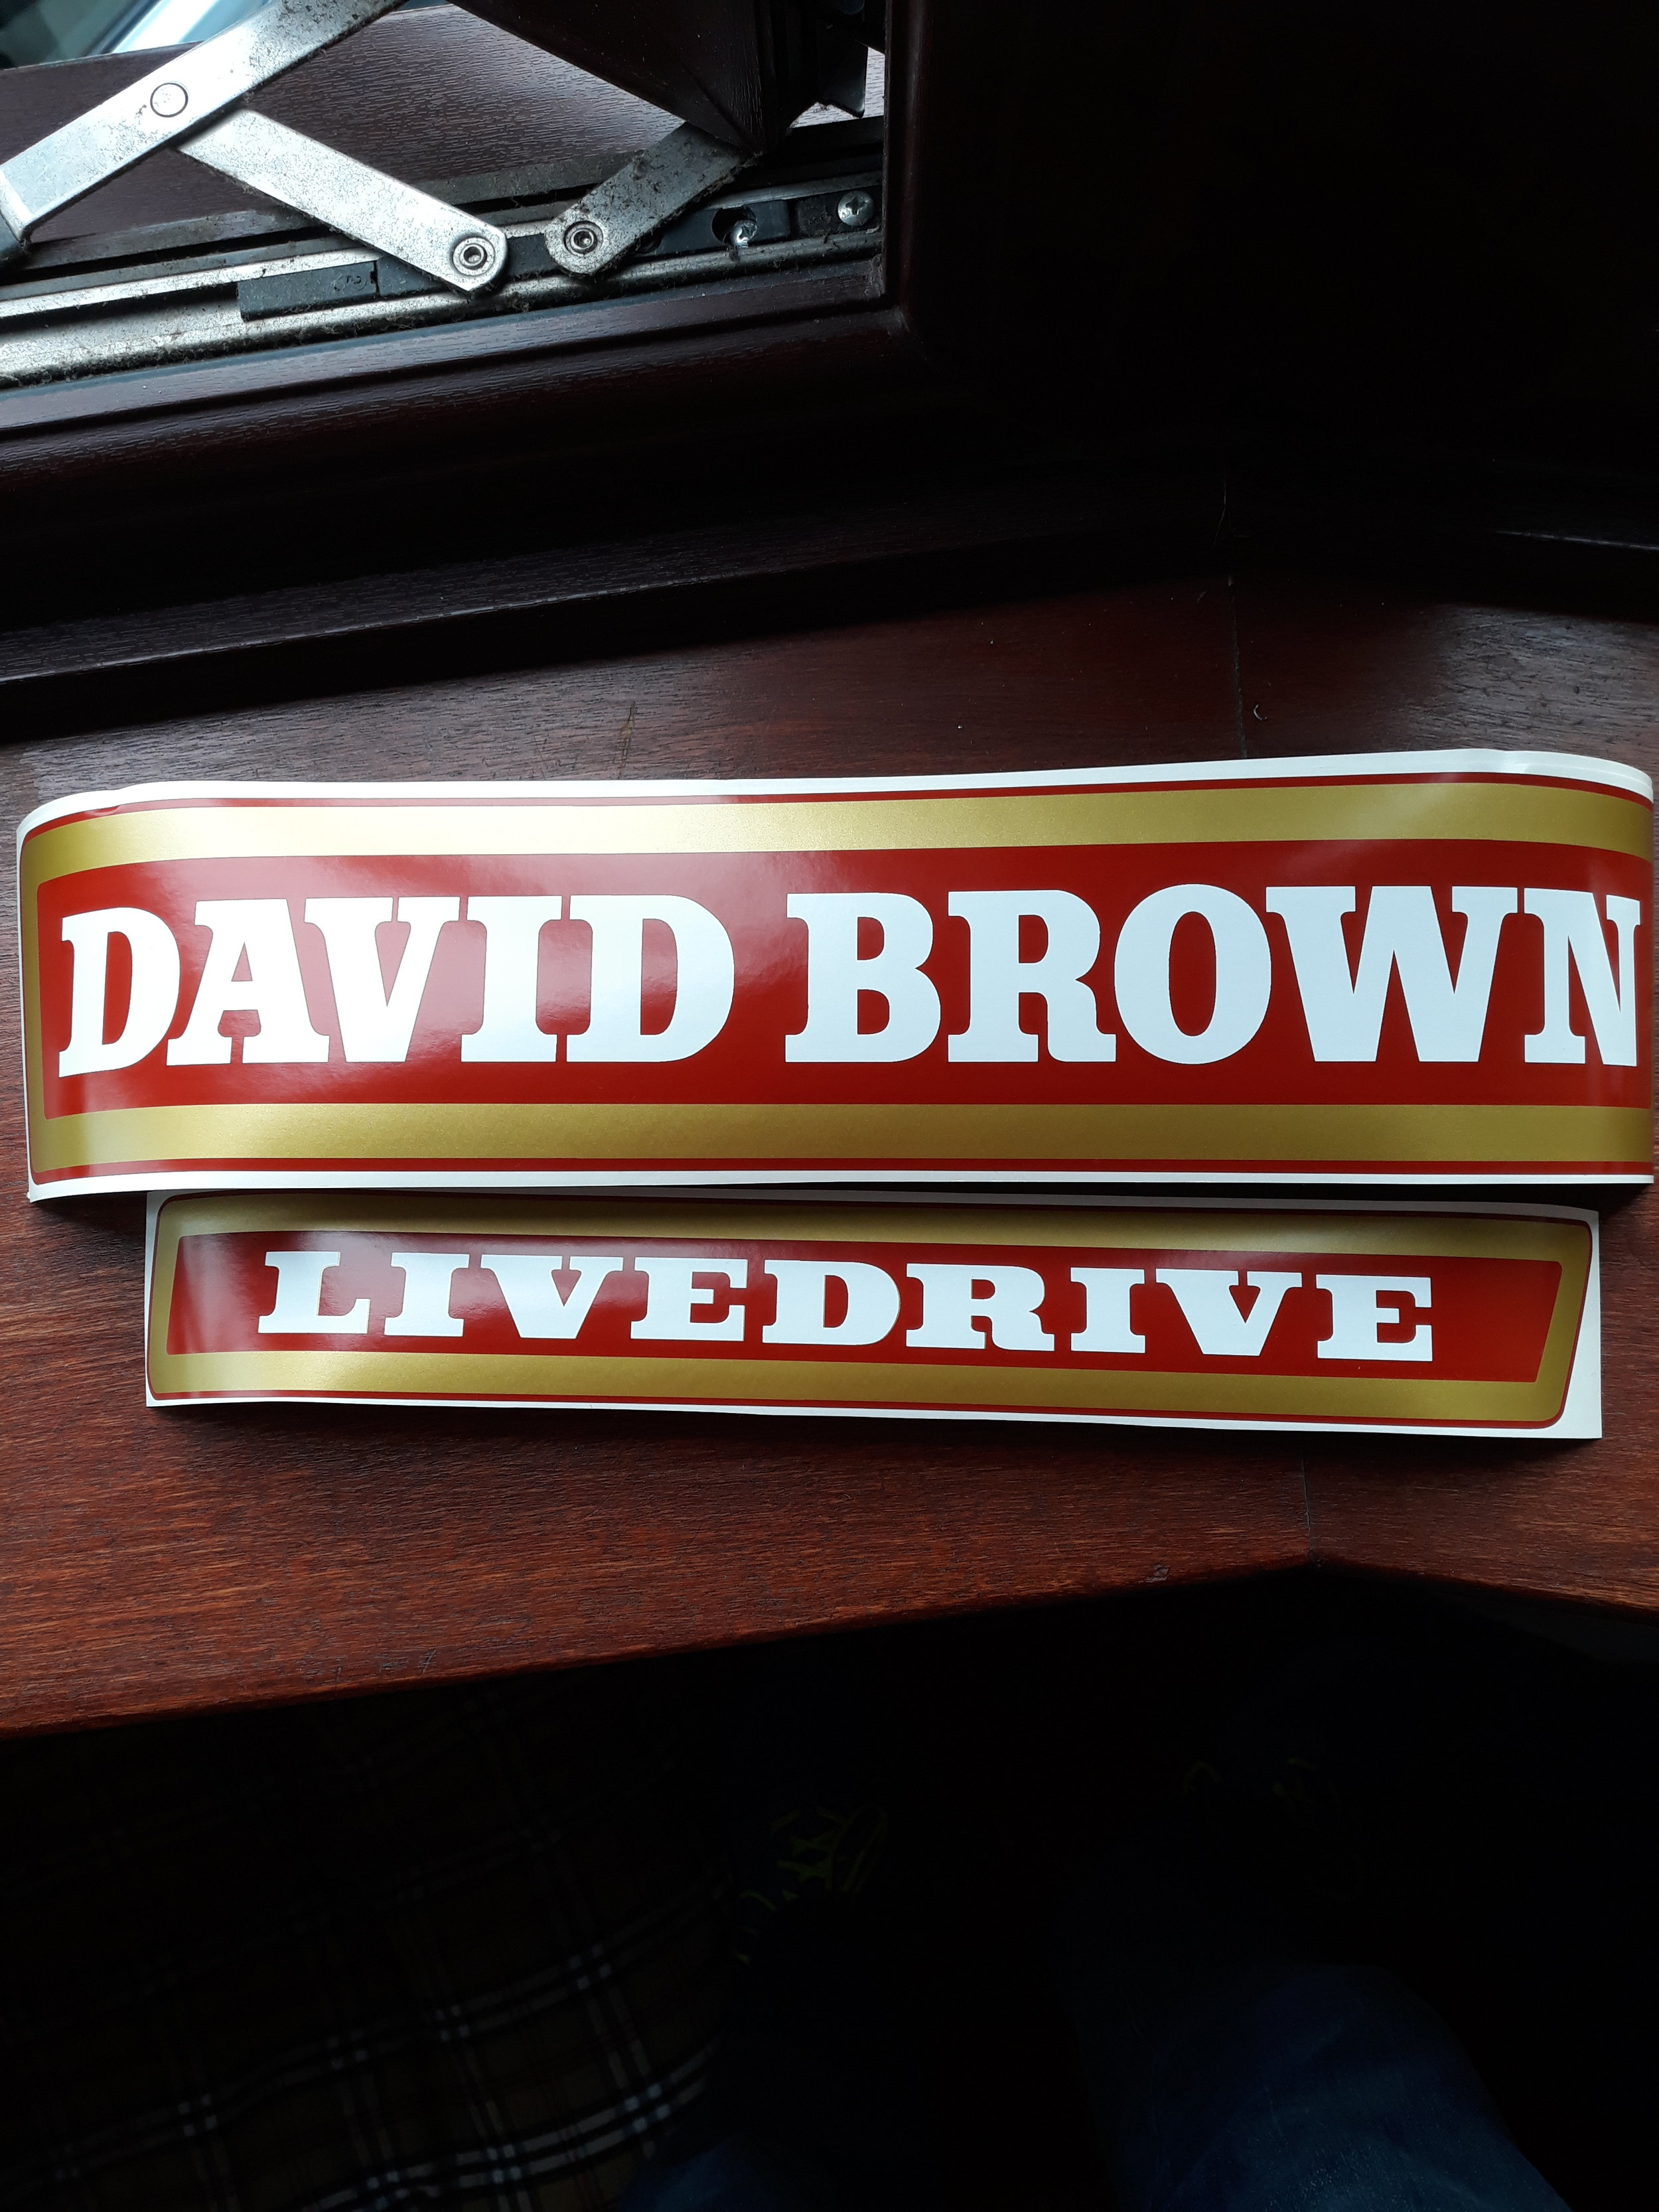 decals David brown 780 selectamatic livedrive tractor  stickers